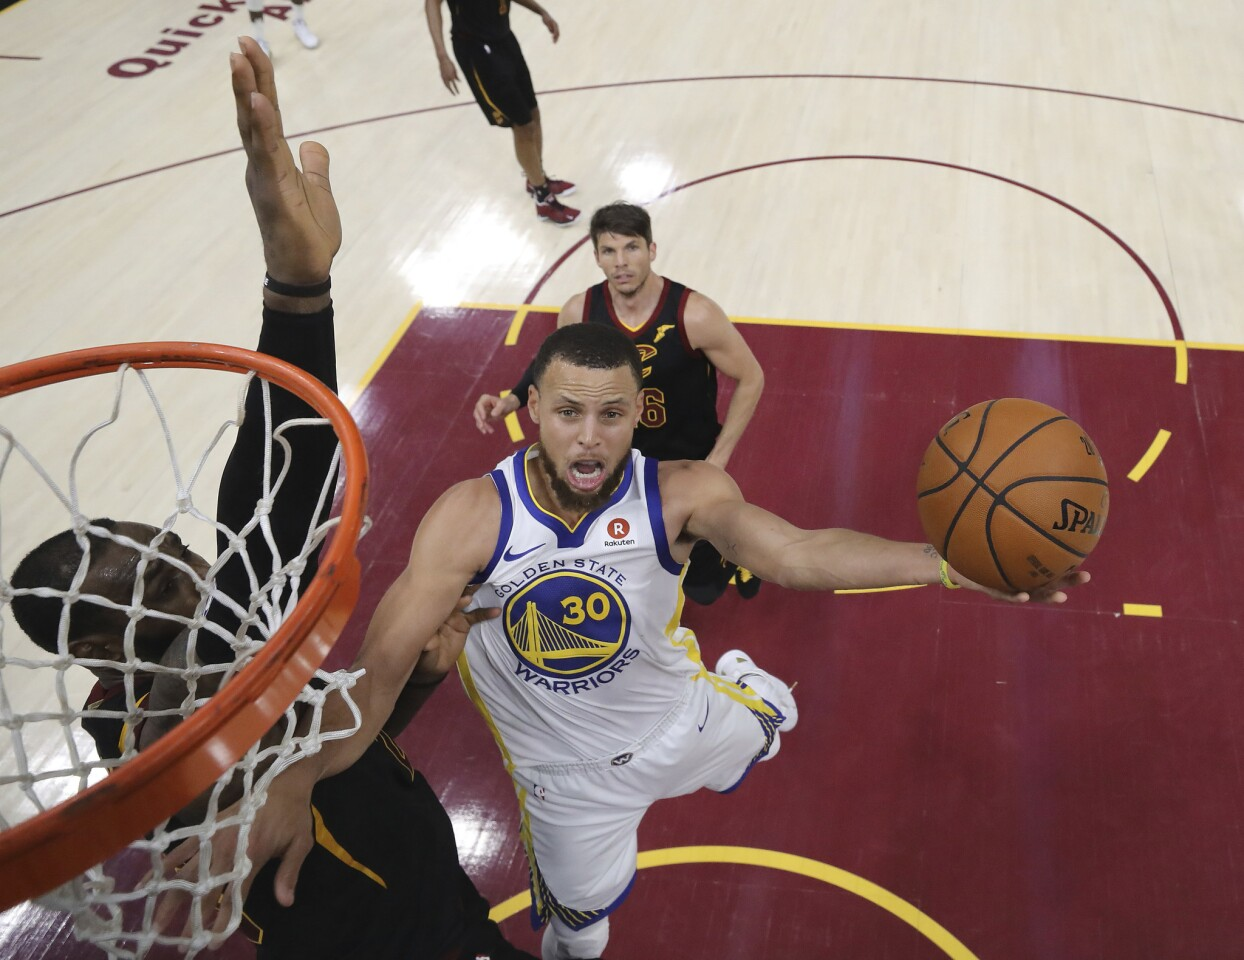 Golden State Warriors' Stephen Curry shoots against Cleveland Cavaliers' LeBron James during the second half of Game 4 of basketball's NBA Finals, Friday, June 8, 2018, in Cleveland. The Warriors defeated the Cavaliers 108-85. (Kyle Terada/Pool Photo via AP)